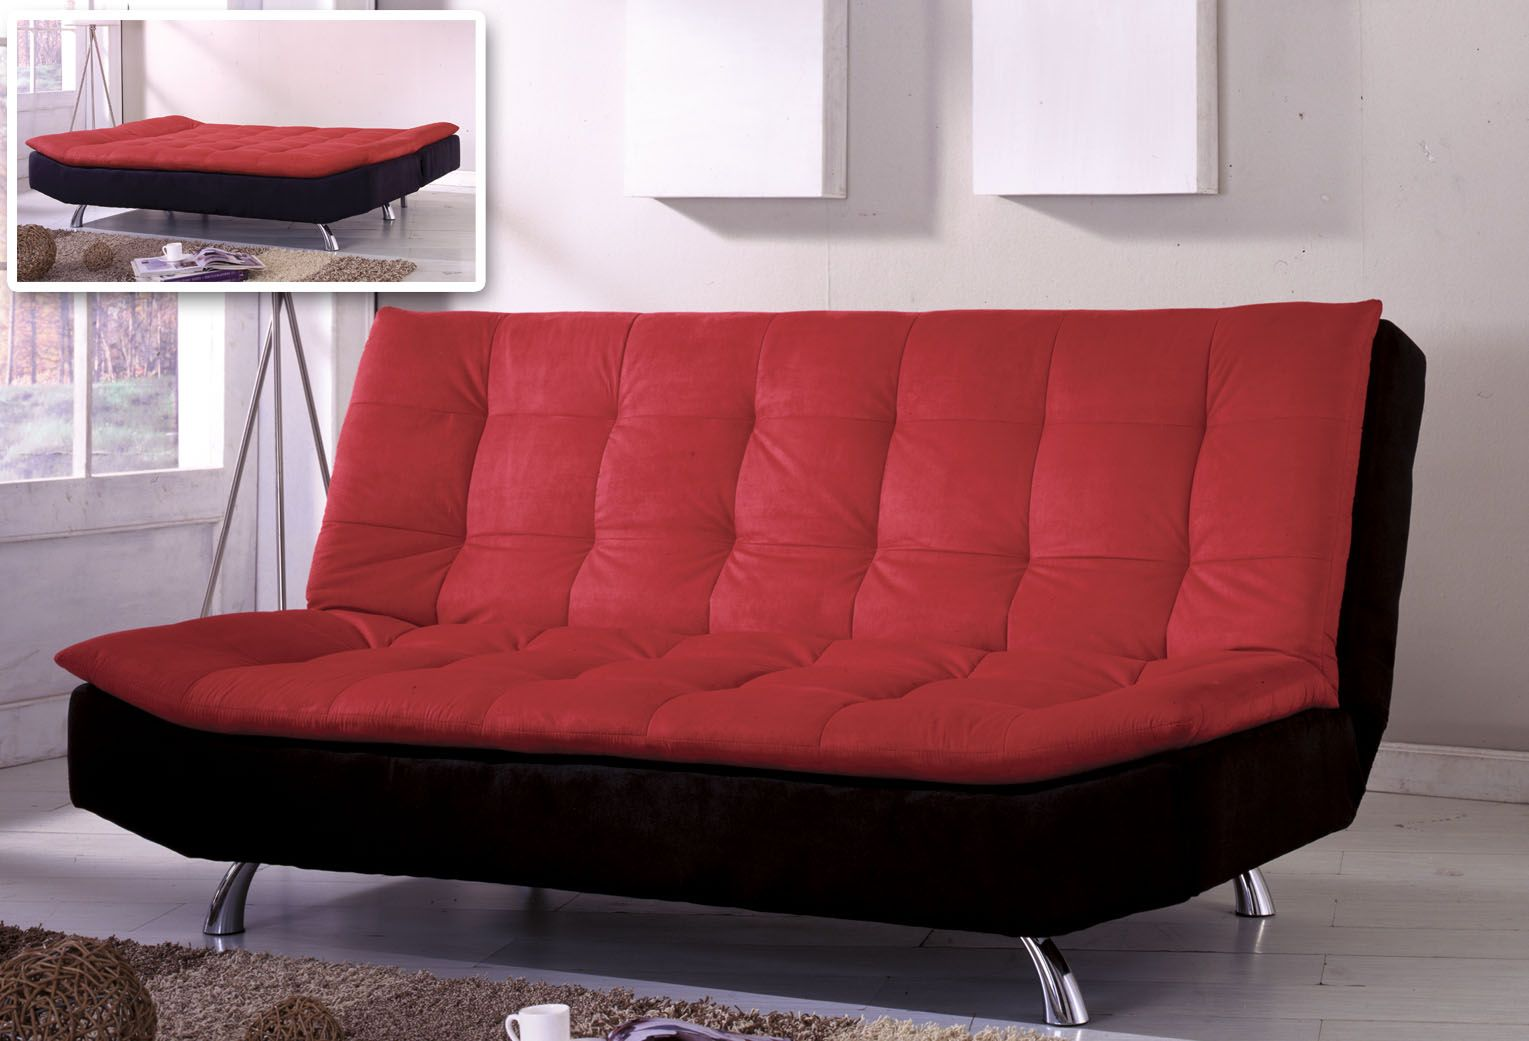 Stylish Red Couches That Turn Into Bed With Tuft Pattern And Black Accent Aside Tripod Lamp In White Room Gl Window